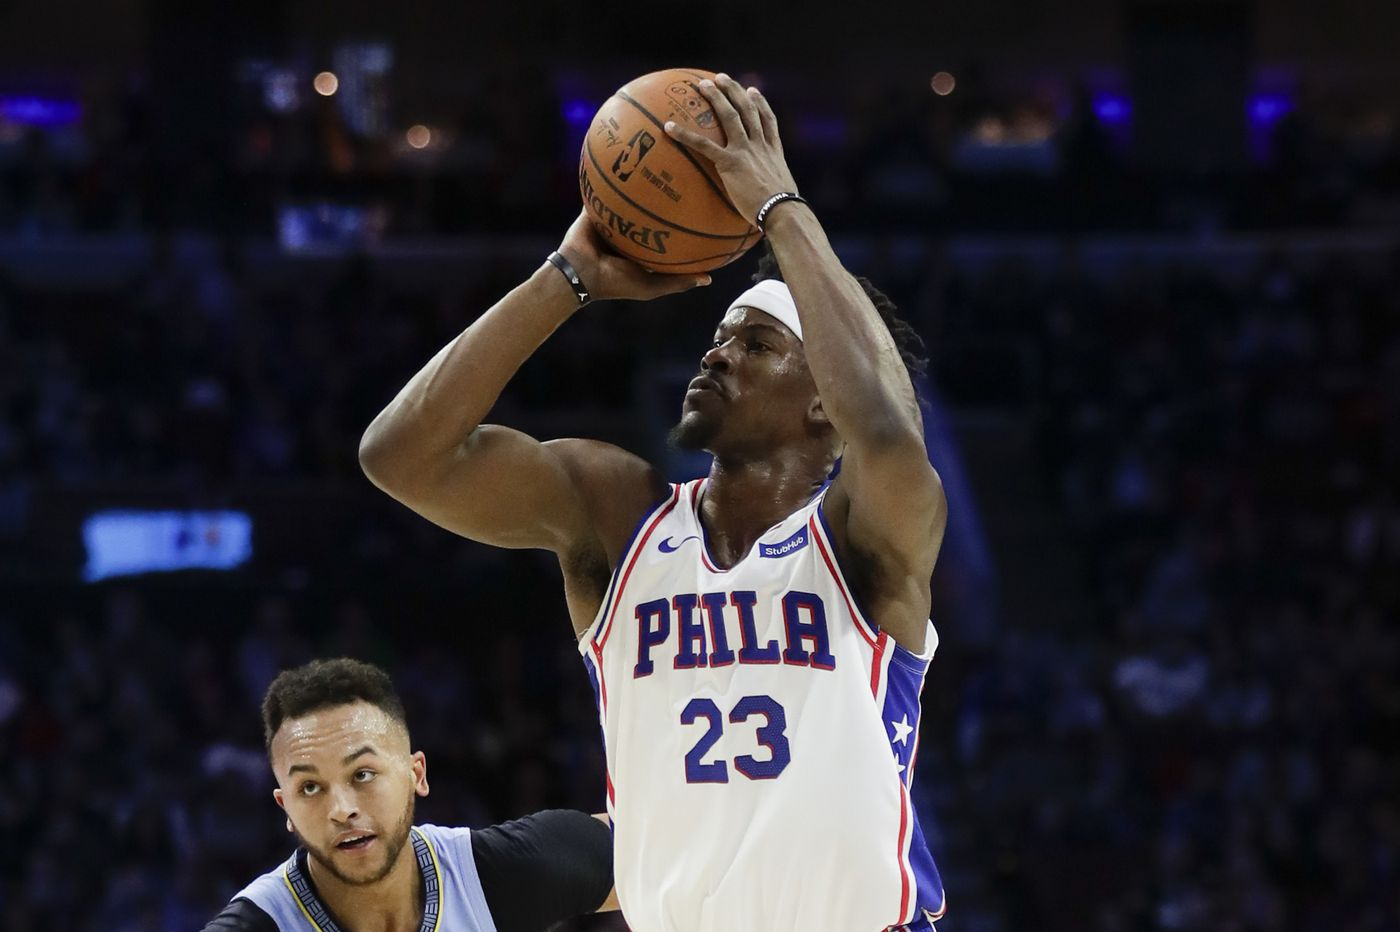 Sixers' Jimmy Butler turns it up a notch in the fourth quarter